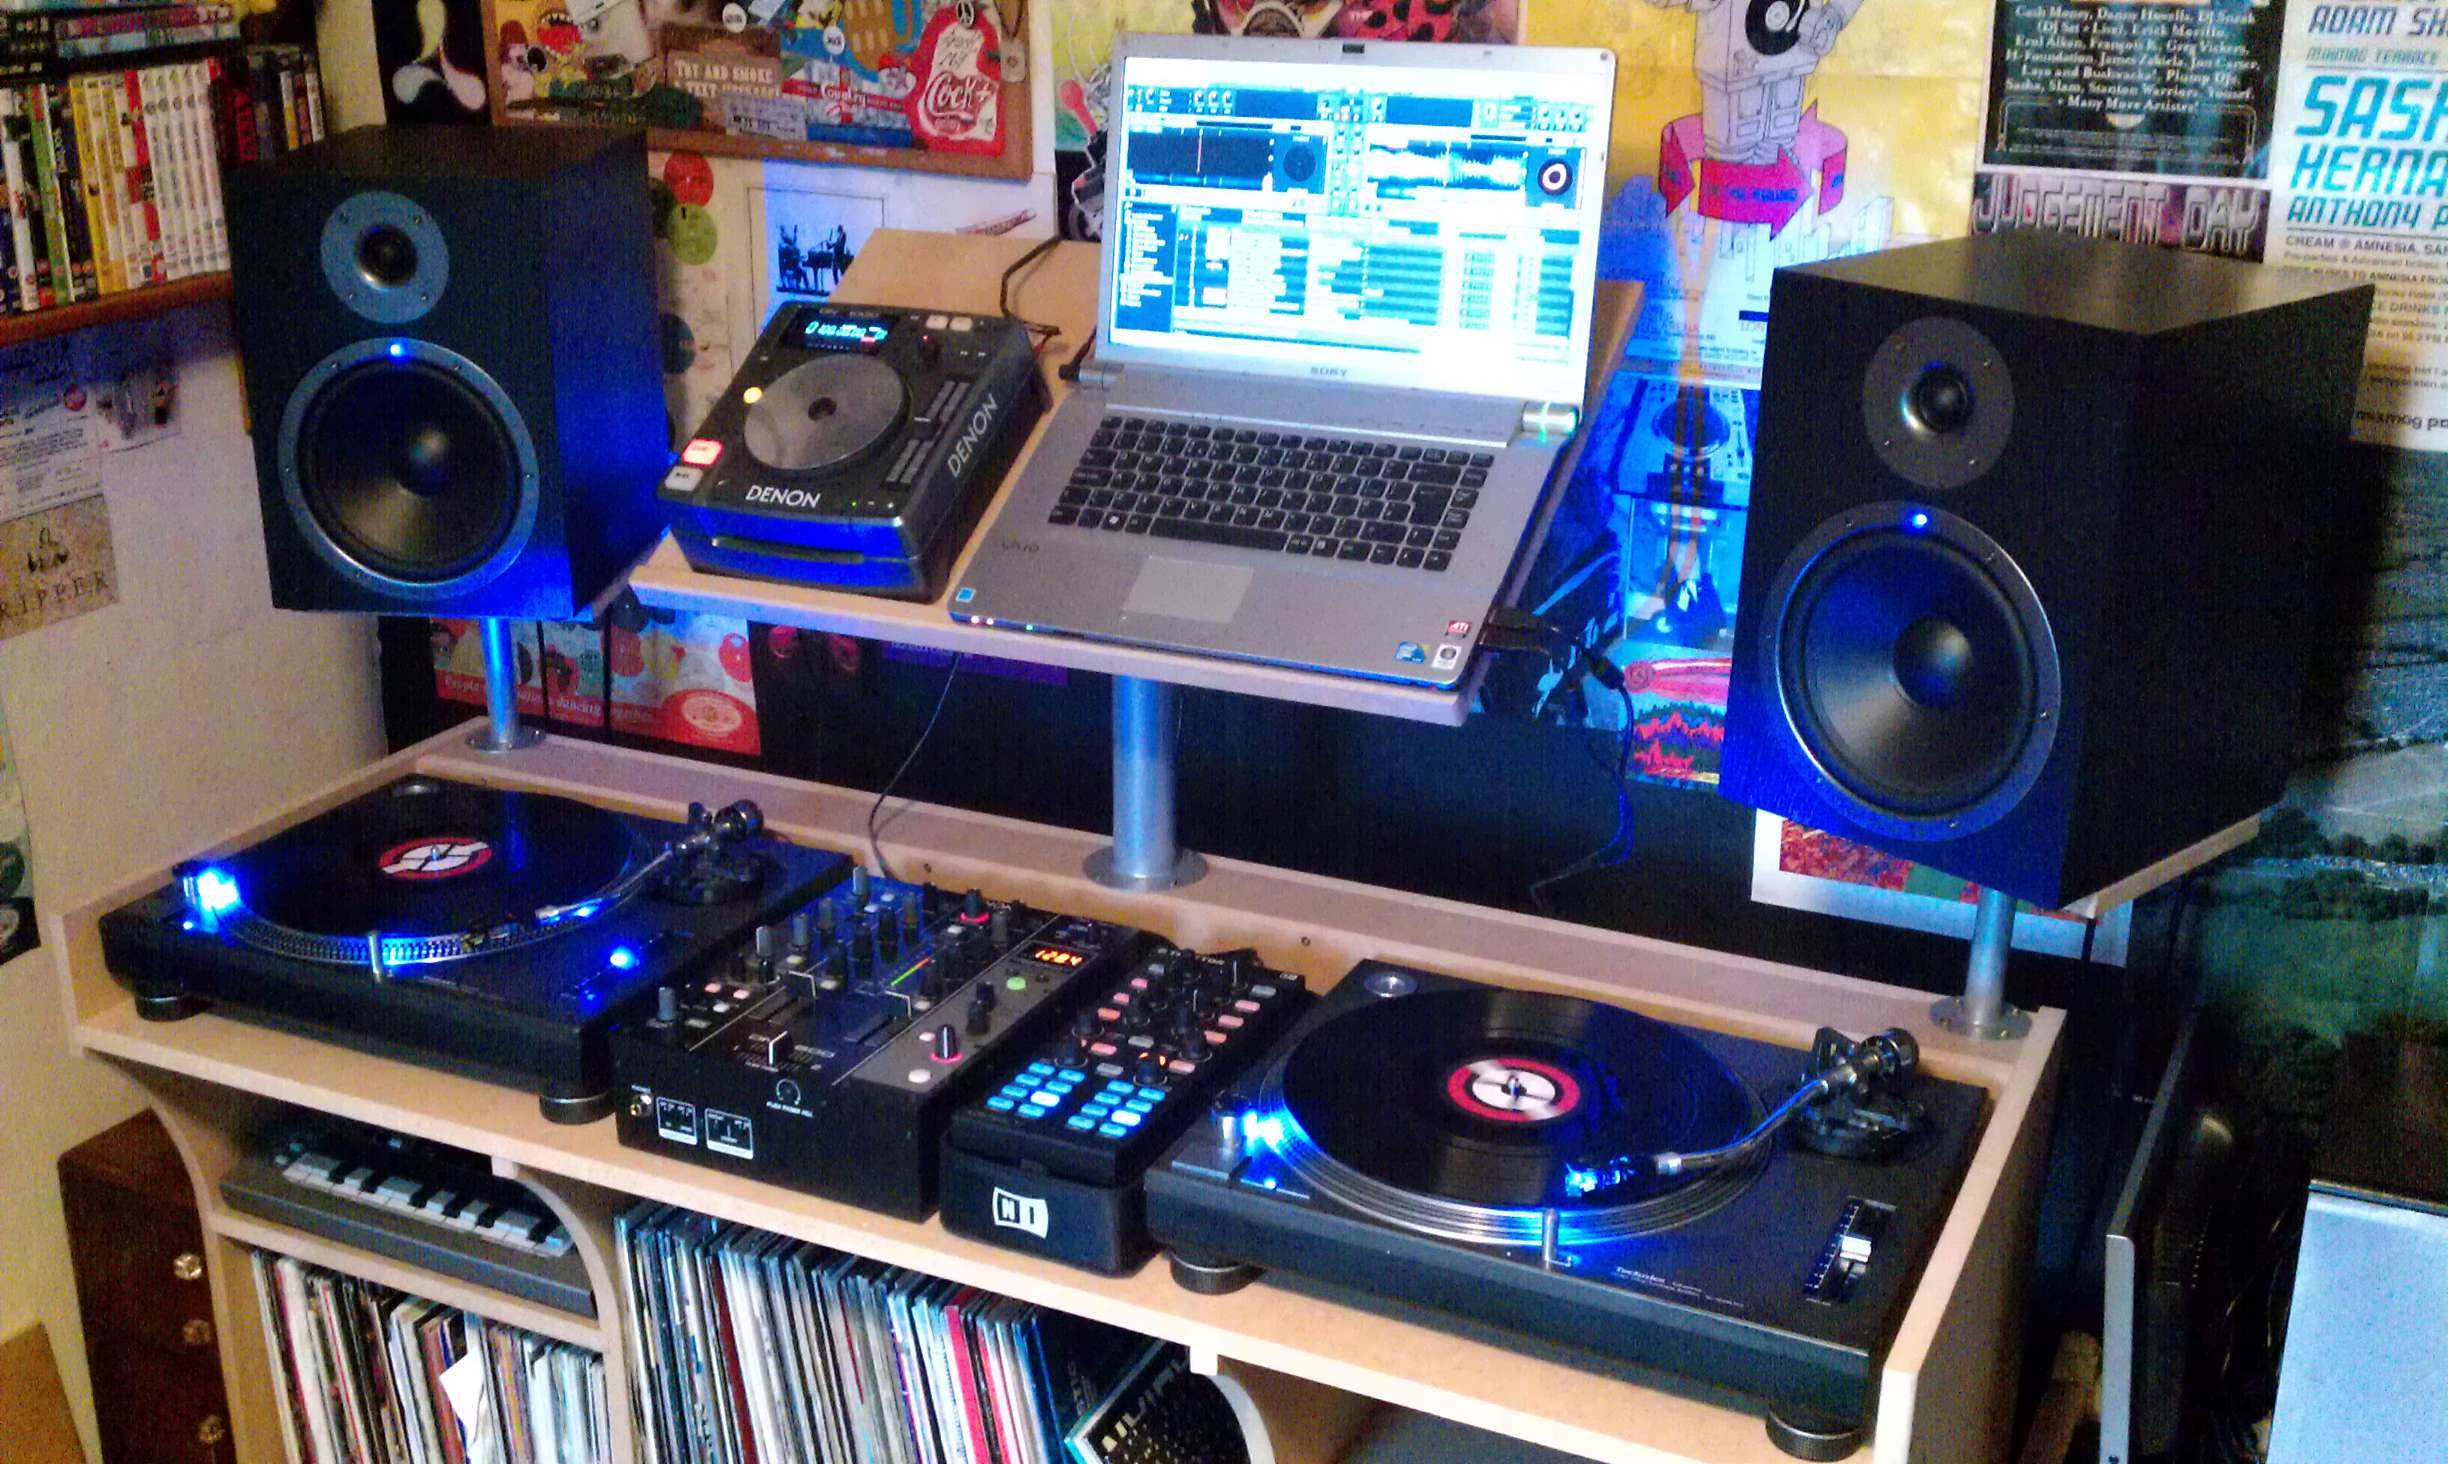 dj setup speakers studio setups beginner music bedroom monitors equipment vinyl guide setting speaker typical studios table audio positioning djs